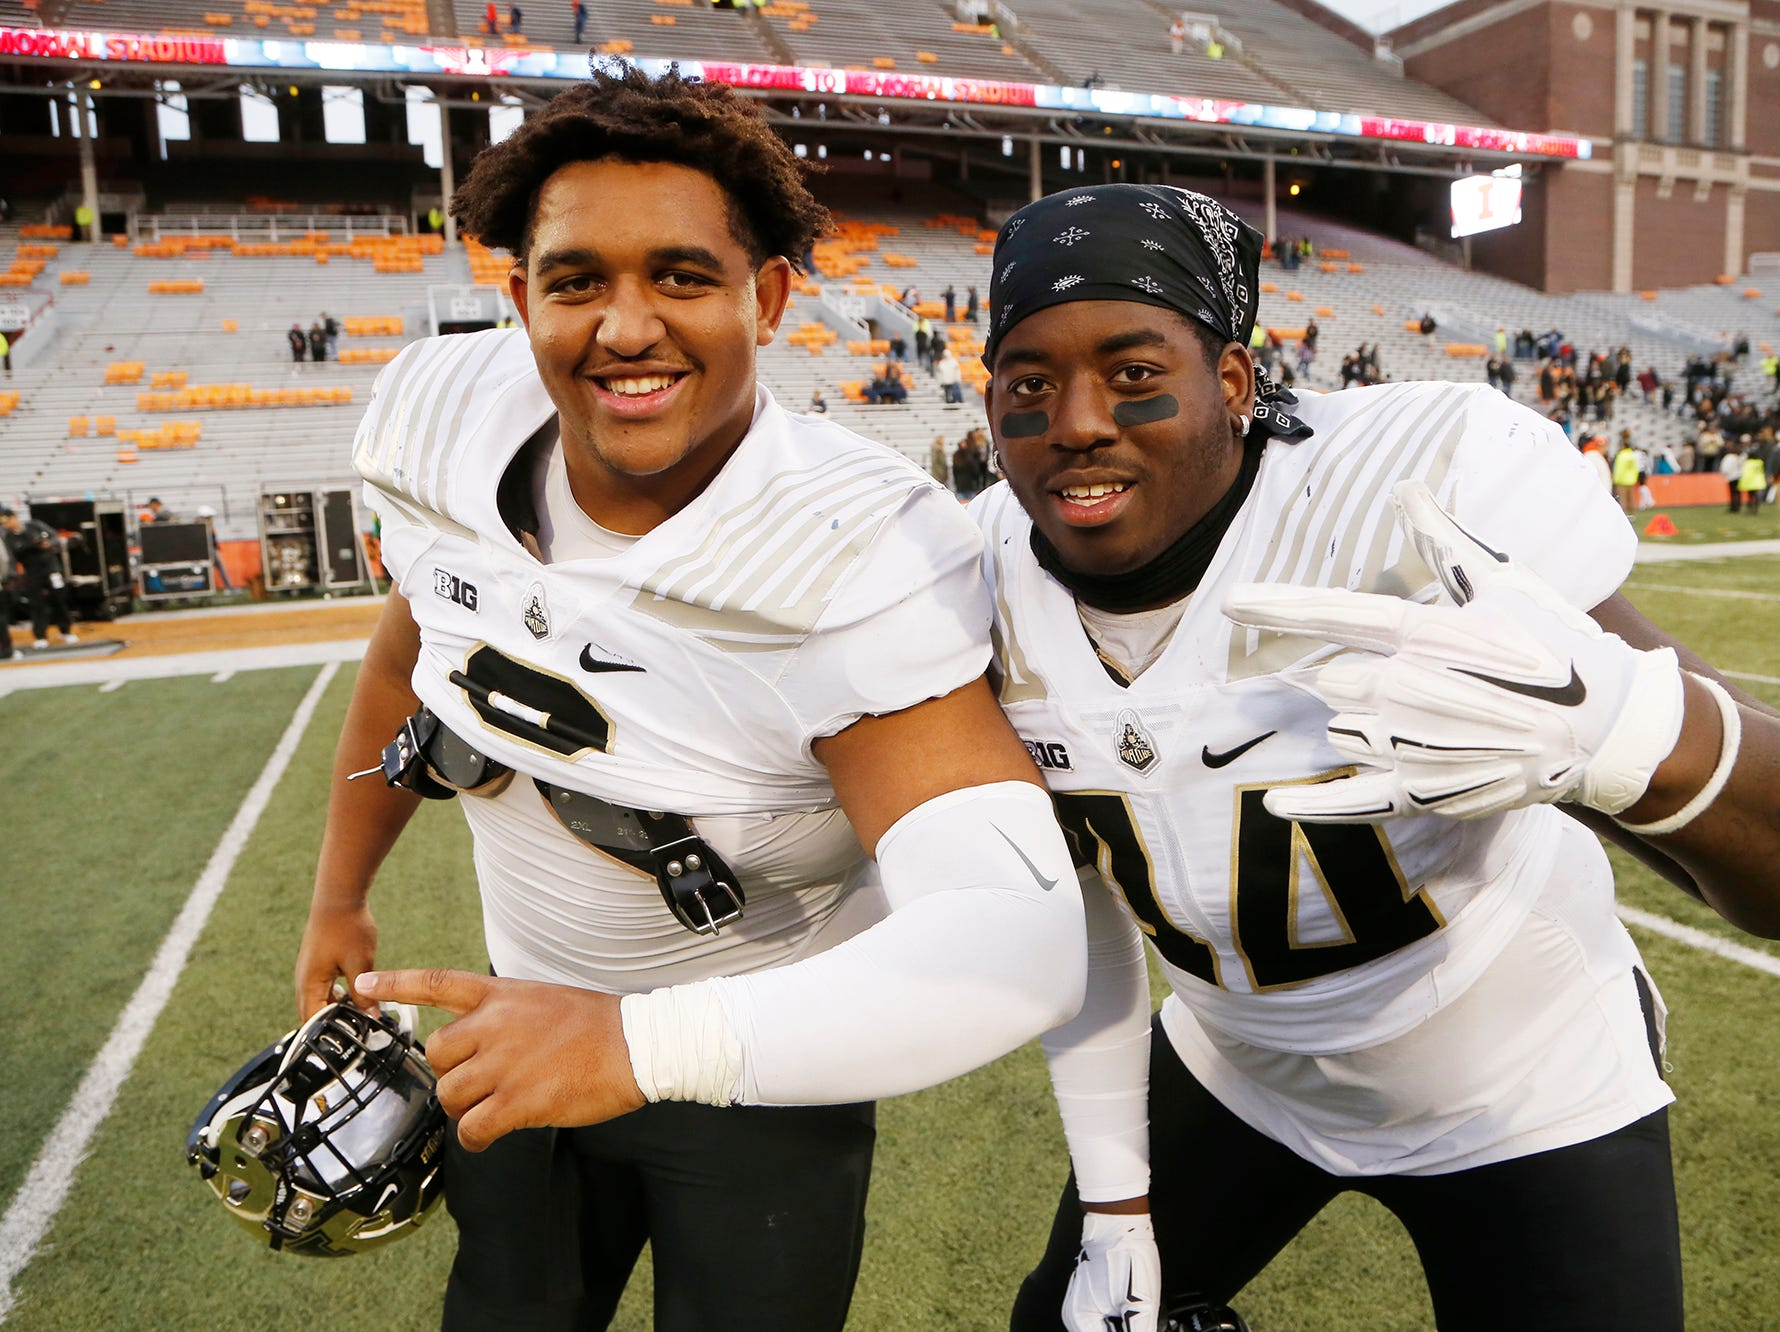 Lorenzo Neal, left, and Anthony Watts mug for cameras after Purdue defeated Illinois 46-7 Saturday, October 13, 2018, in Champaign, Illinois.